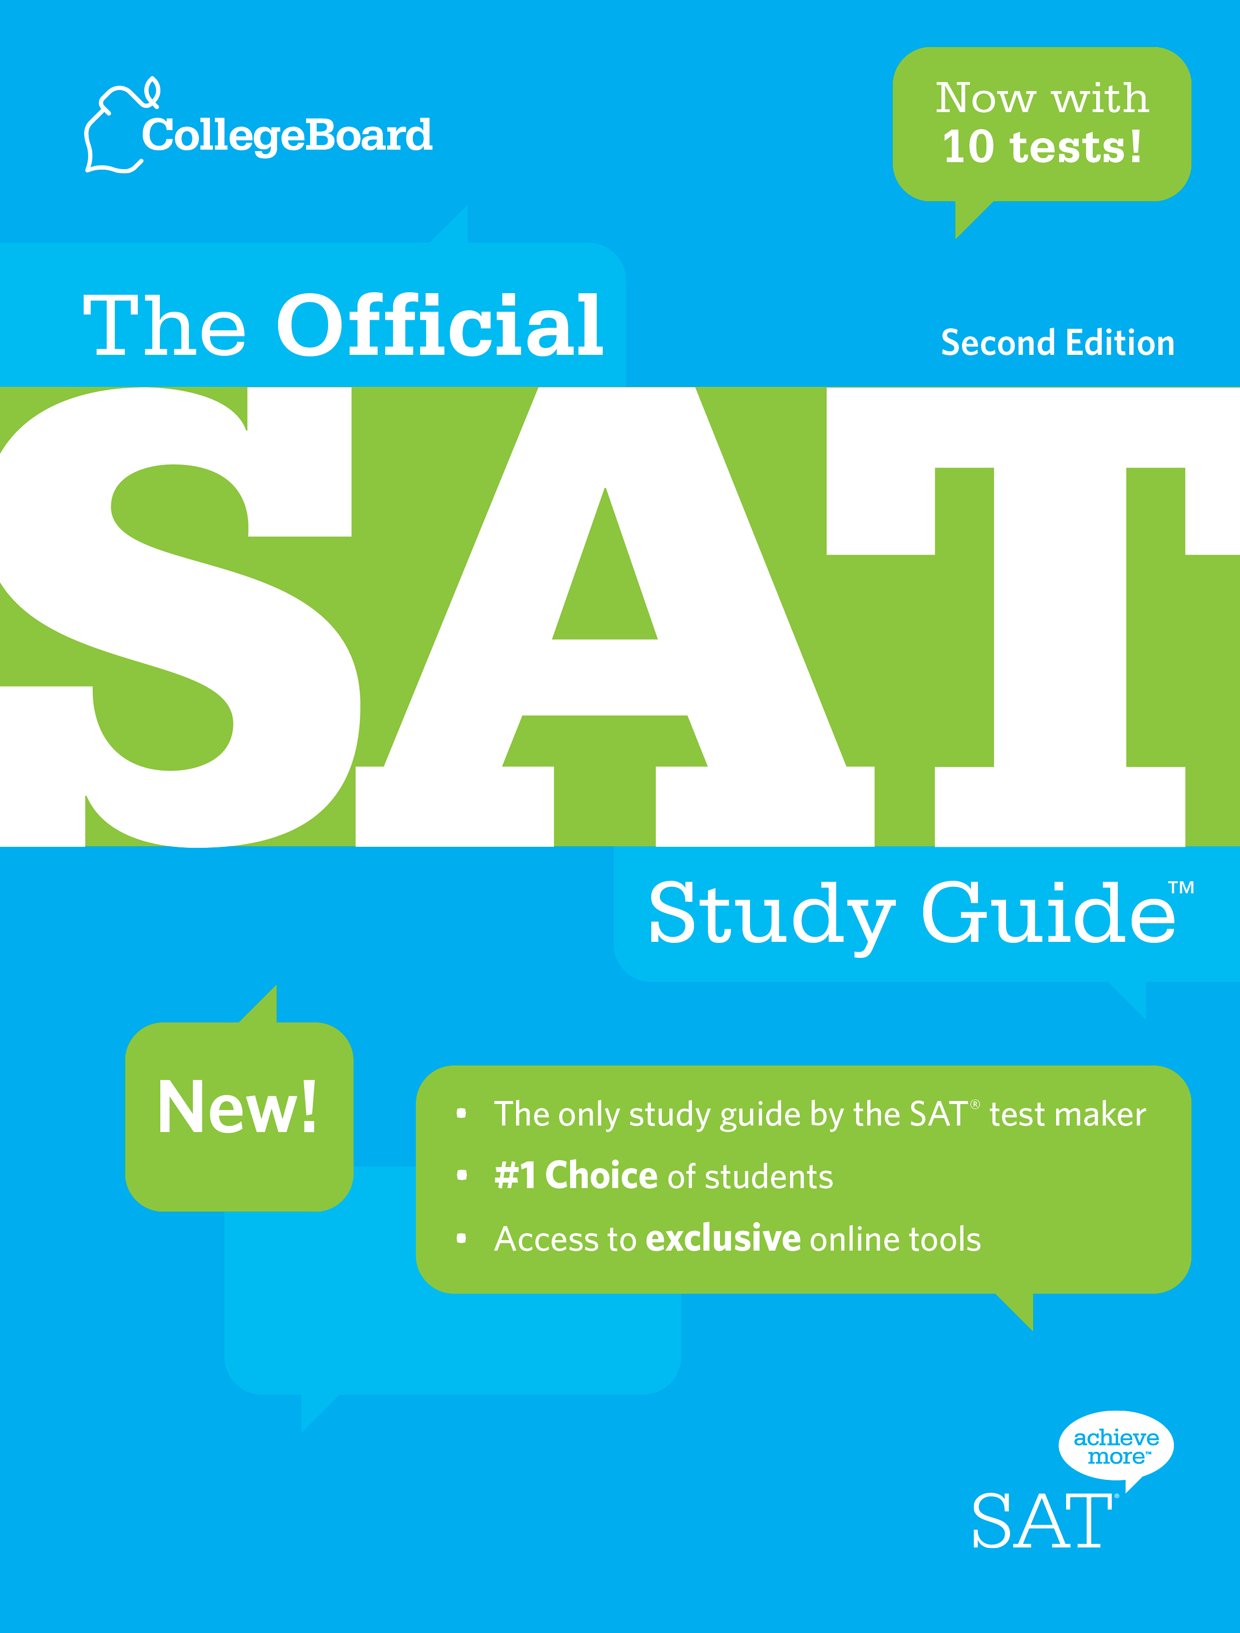 What is the best way to study SAT vocabulary? | Yahoo Answers